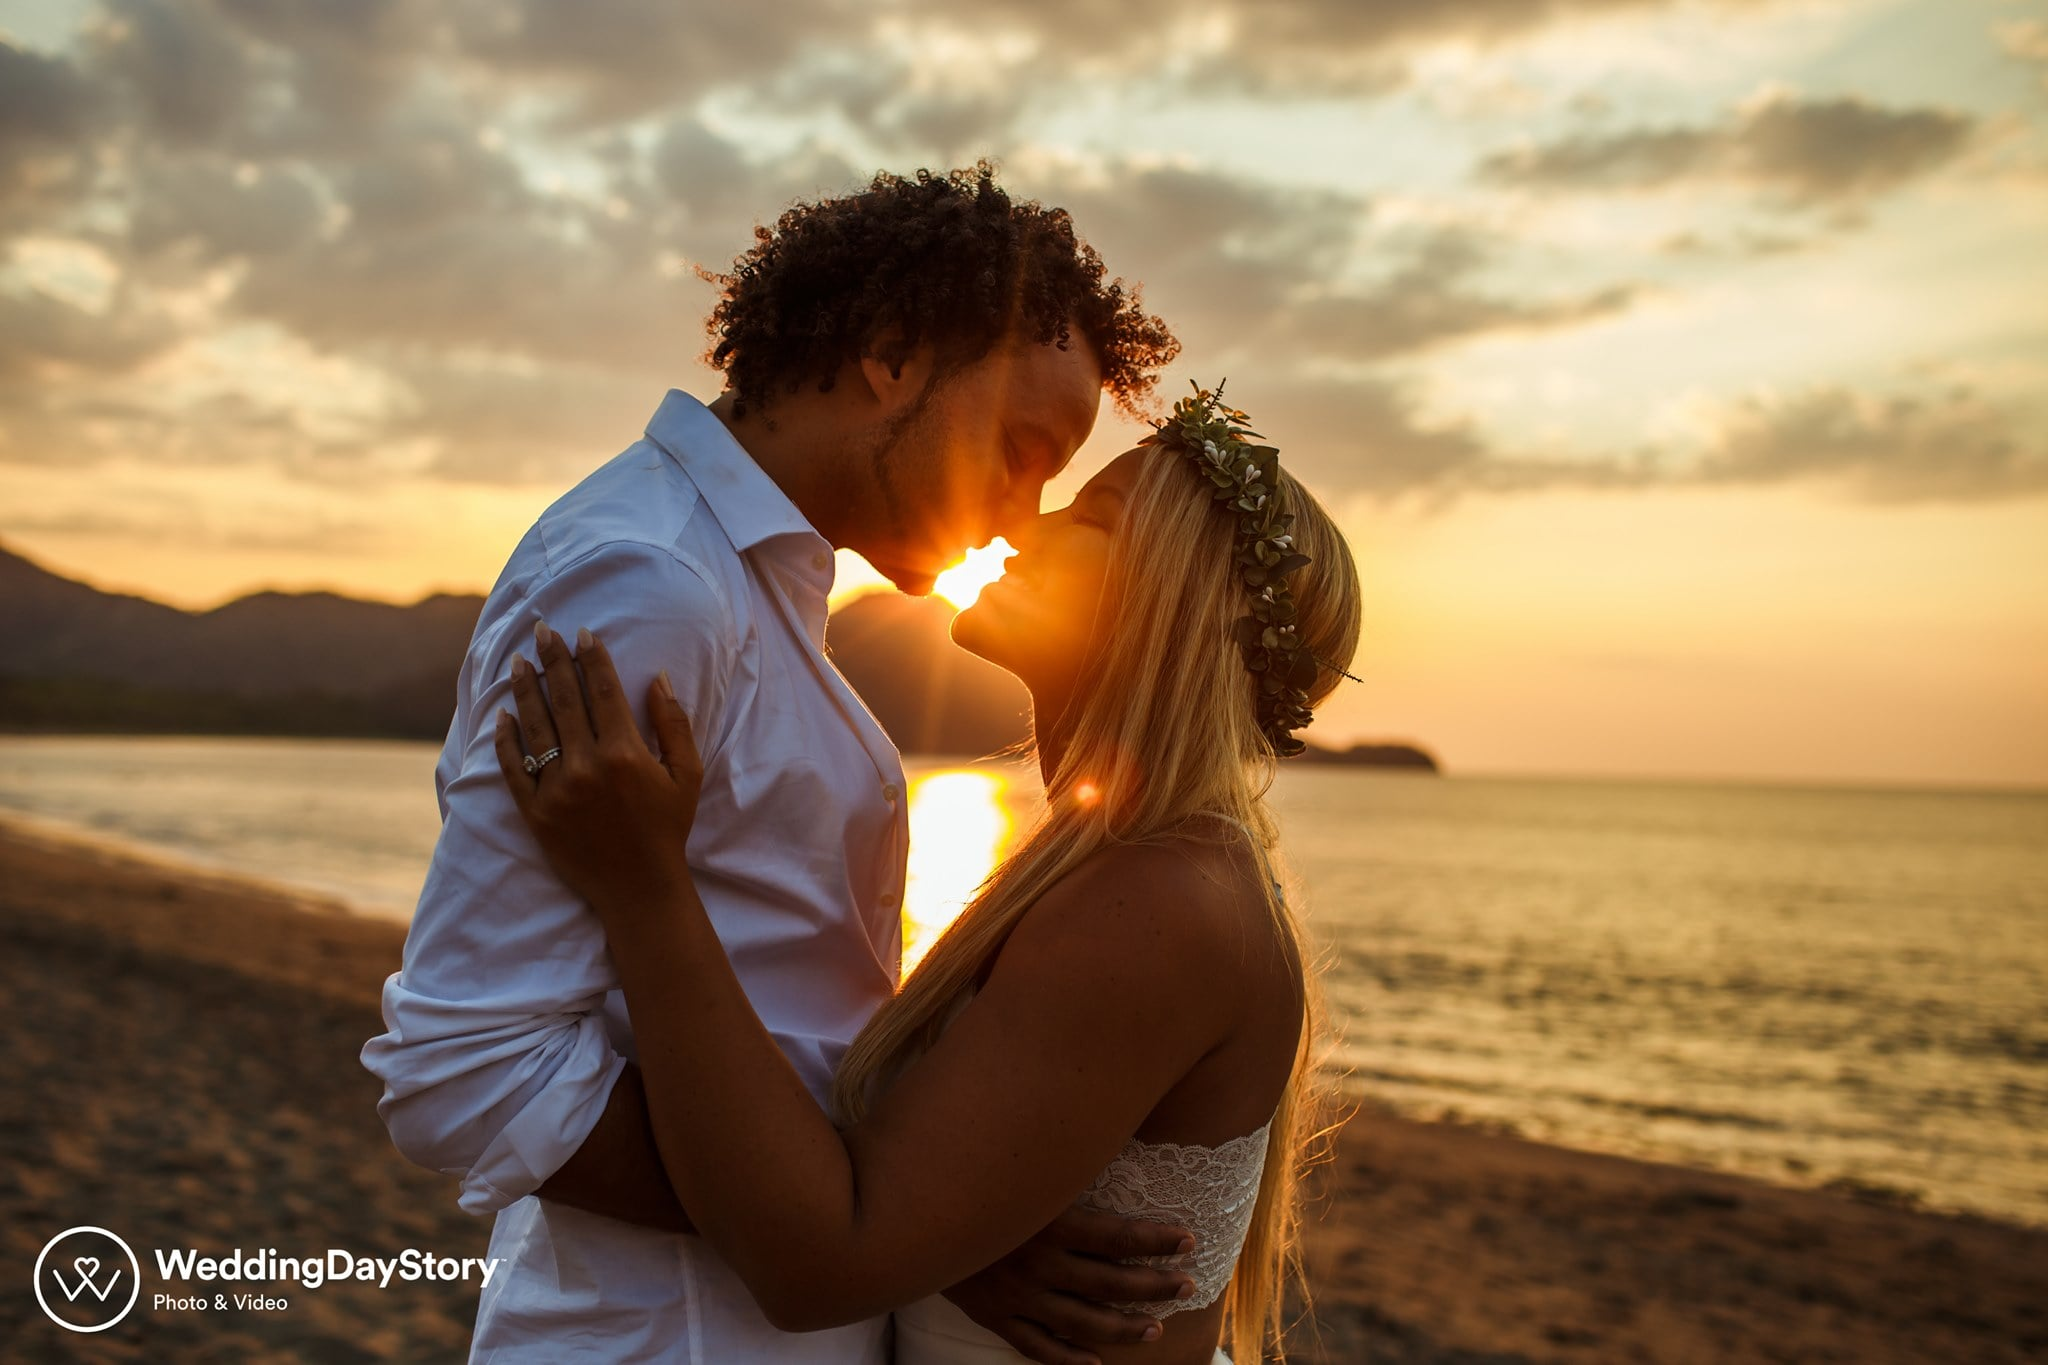 WeddingDay Story Photography, 6 Tips to help you plan your destination wedding during 2021/2022 for Luxury Destination Wedding network Adriana Weddings